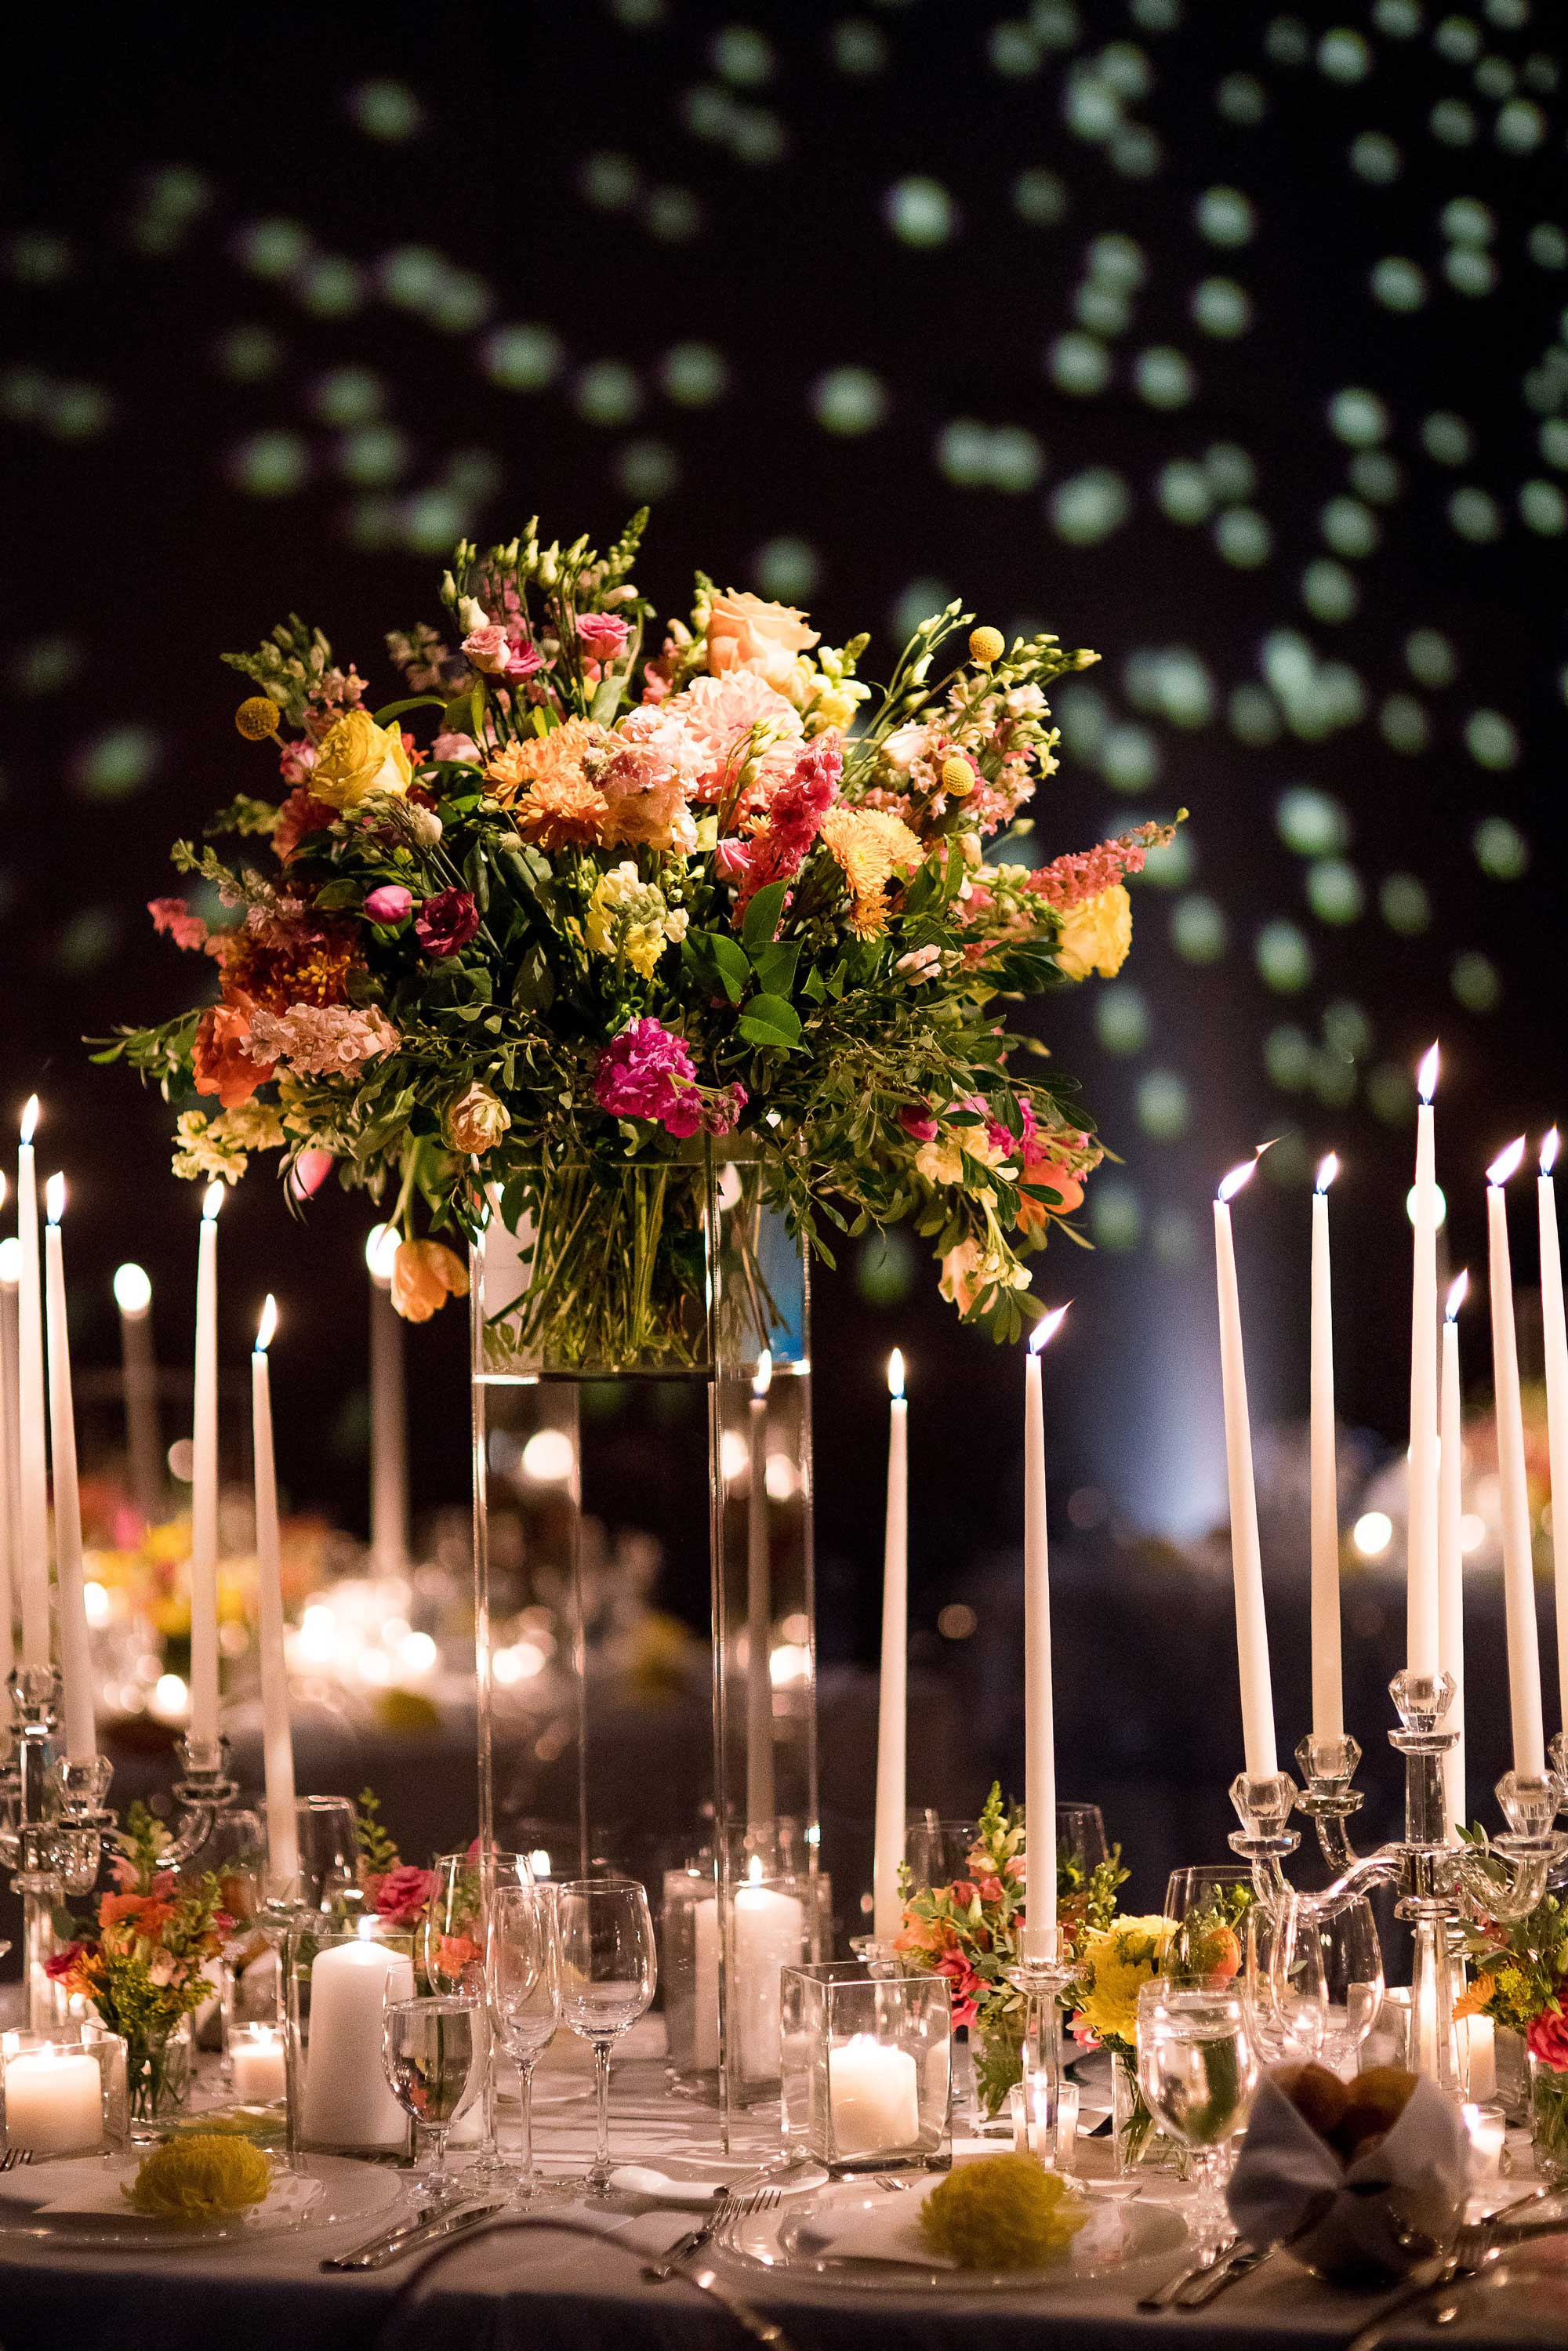 Inside Weddings Spring 2017 issue bright colored flower centerpiece with taper candles dark lighting reception